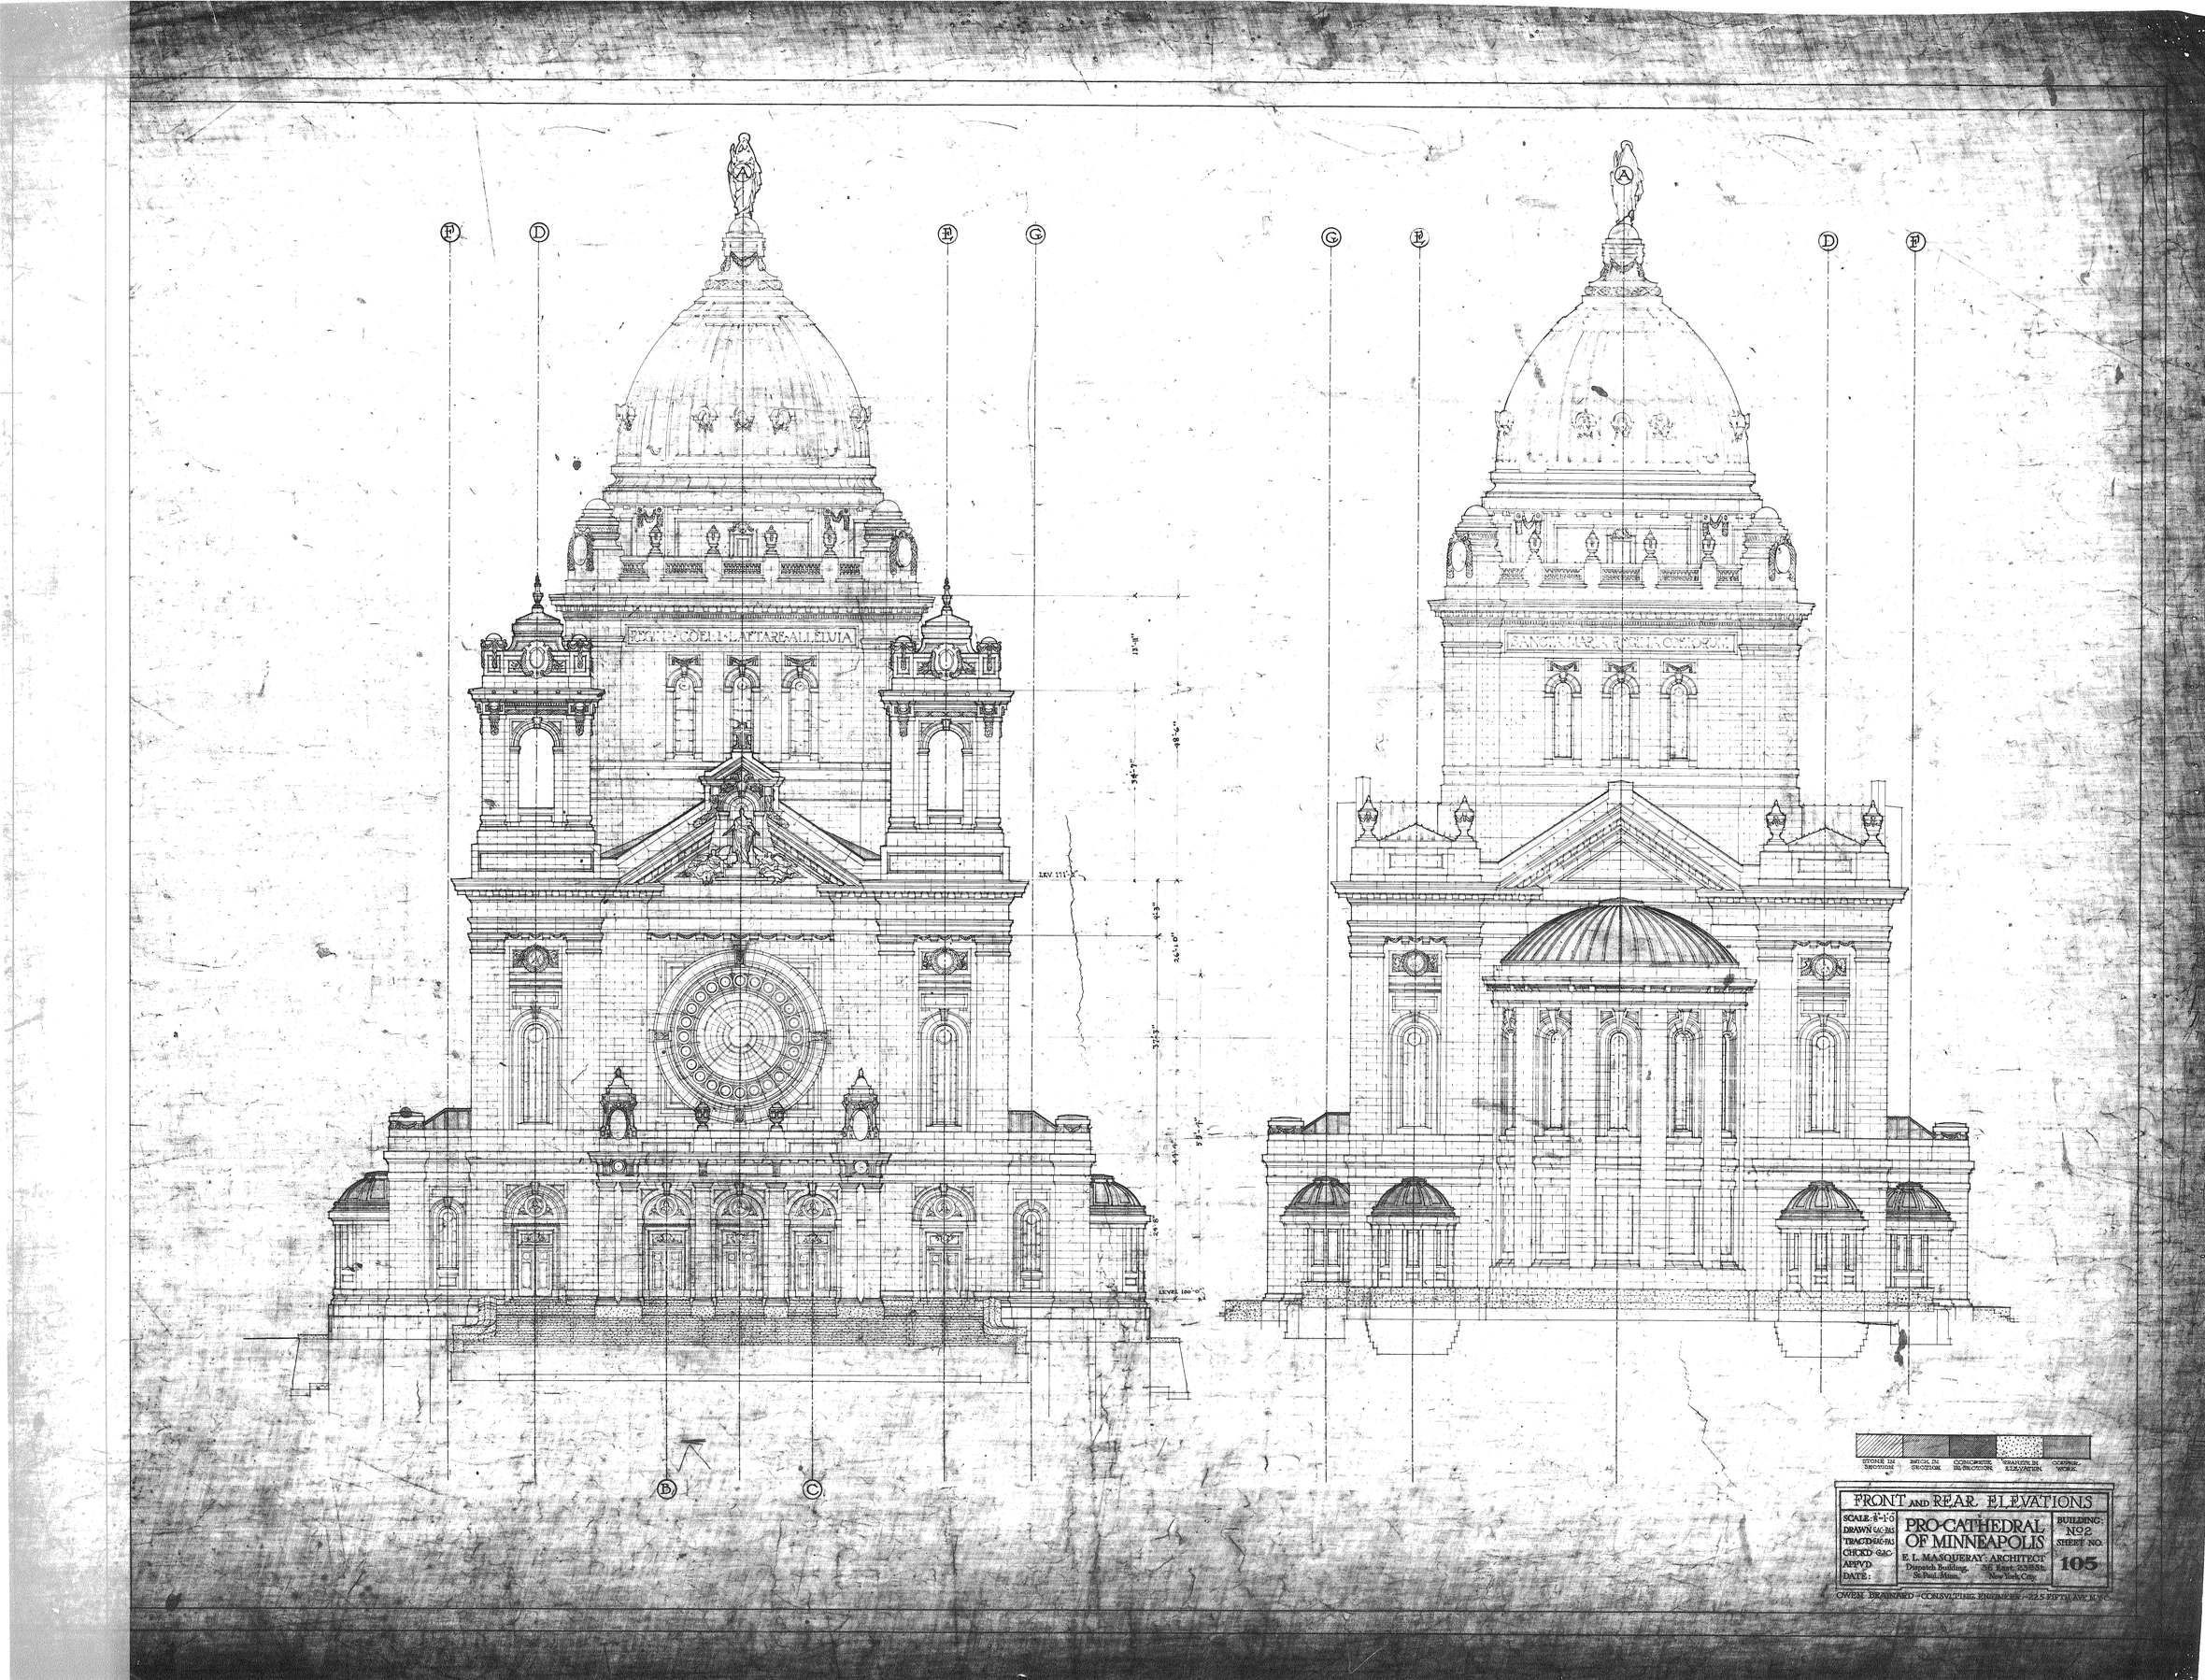 Vintage blueprint front and rear elevations basilica of saint mary vintage blueprint front and rear elevations basilica of saint mary church pro cathedral of minneapolis el masqueray architect building no malvernweather Images